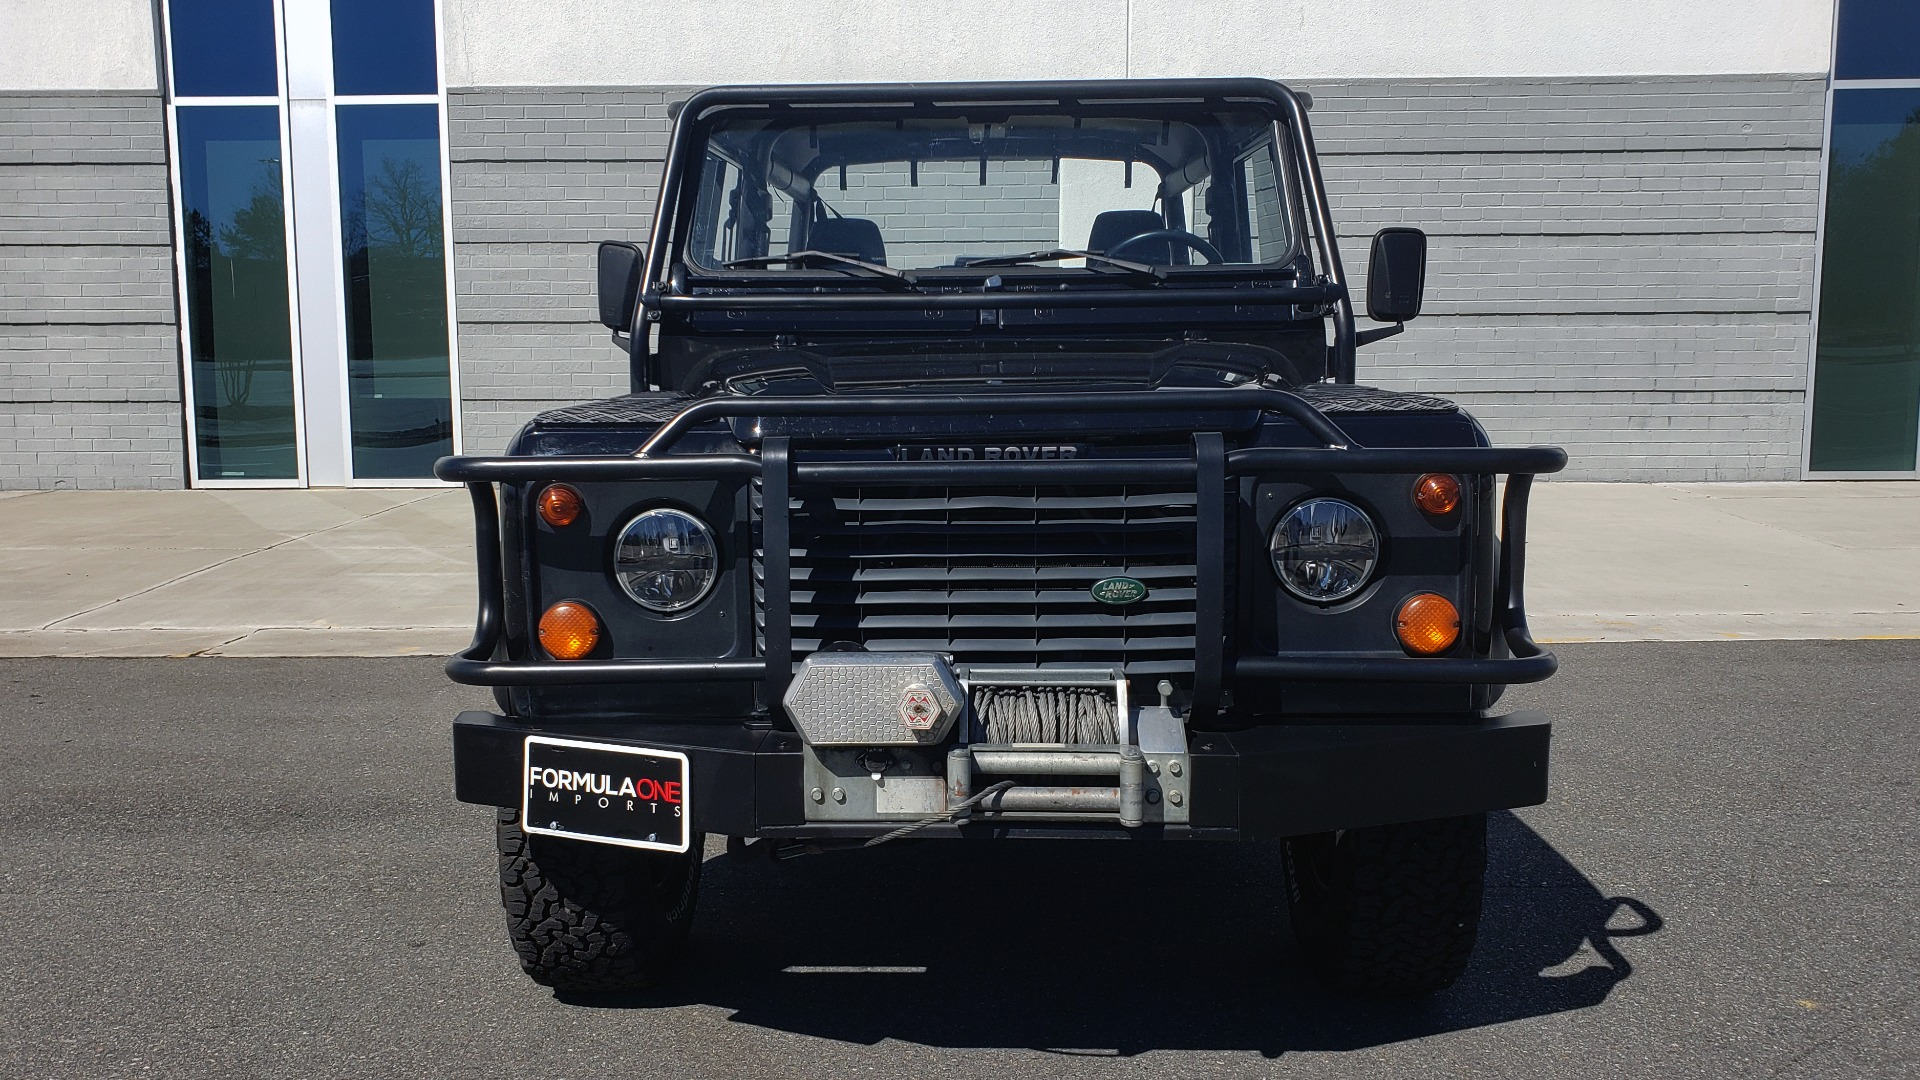 Used 1995 Land Rover DEFENDER 90 4x4 / 3.9L V8 / SOFT-TOP / 5-SPD MANUAL / RUNS GREAT for sale $74,383 at Formula Imports in Charlotte NC 28227 19